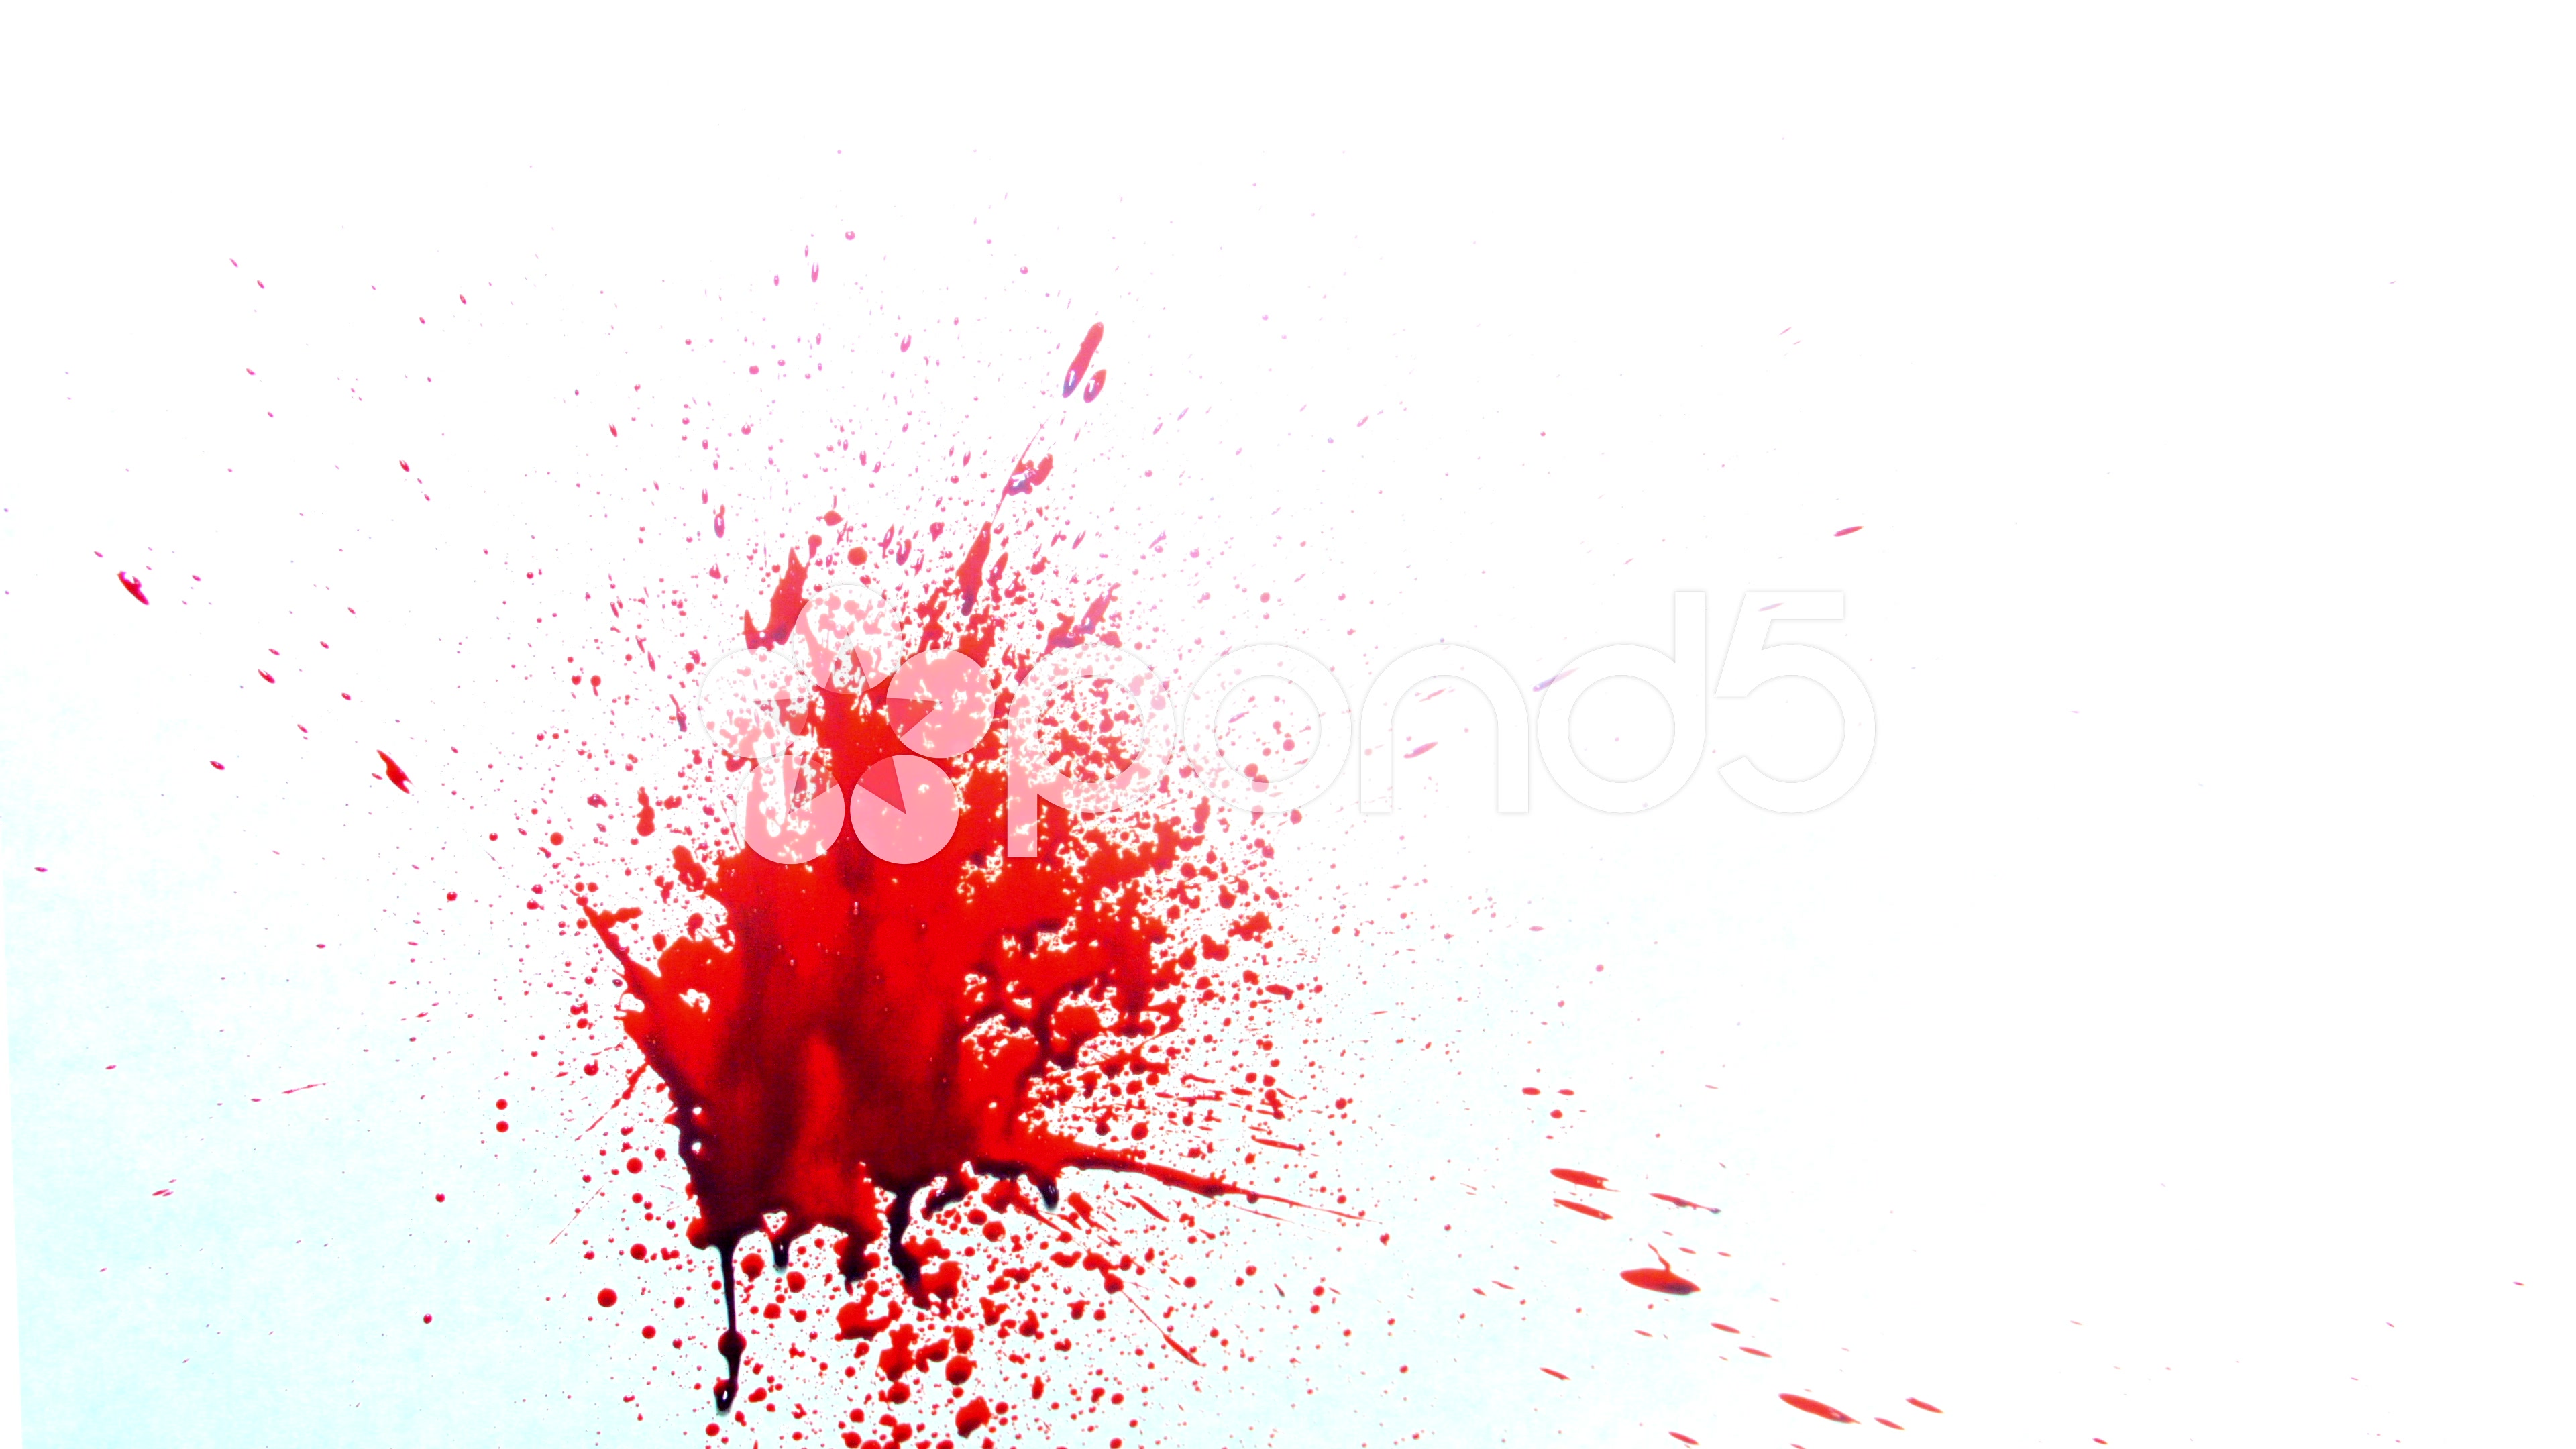 how to get into blood spatter analysis